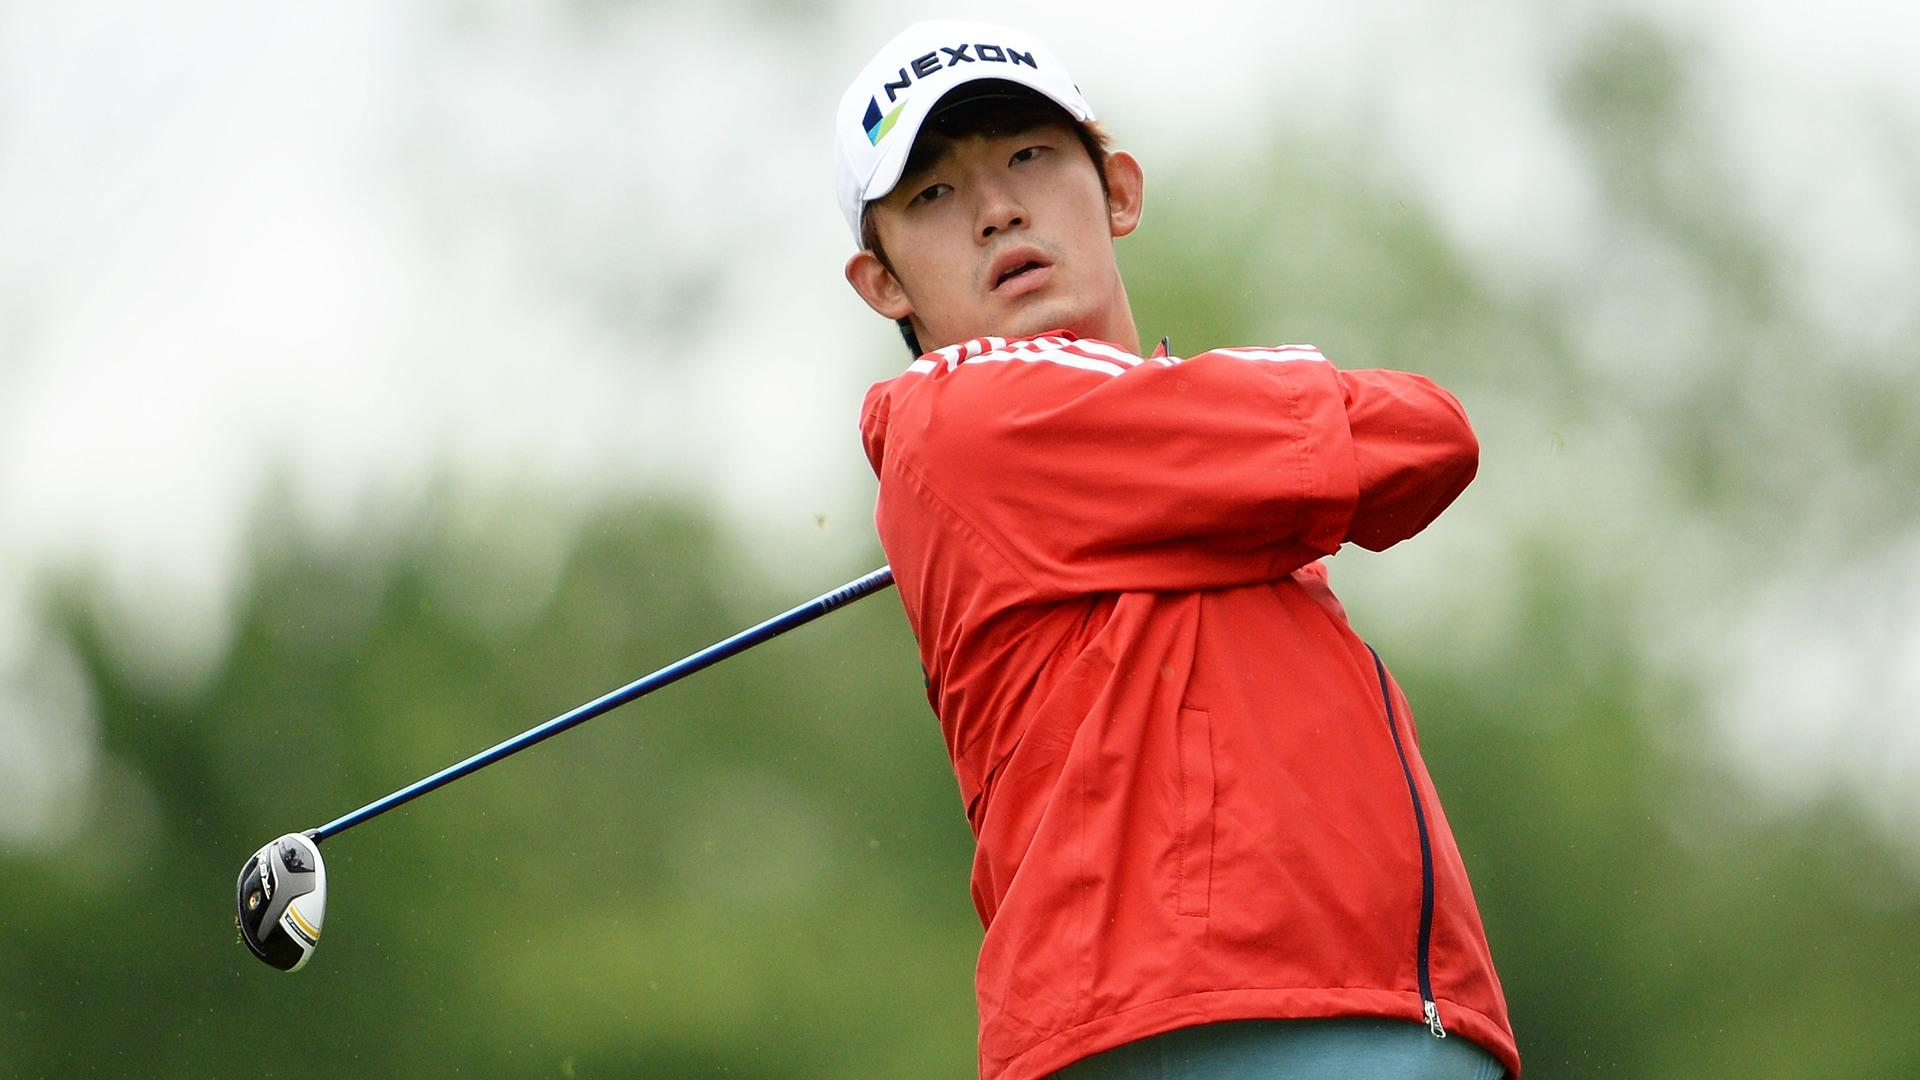 Korean golfer handed 3-year ban for flipping off distracting spectator